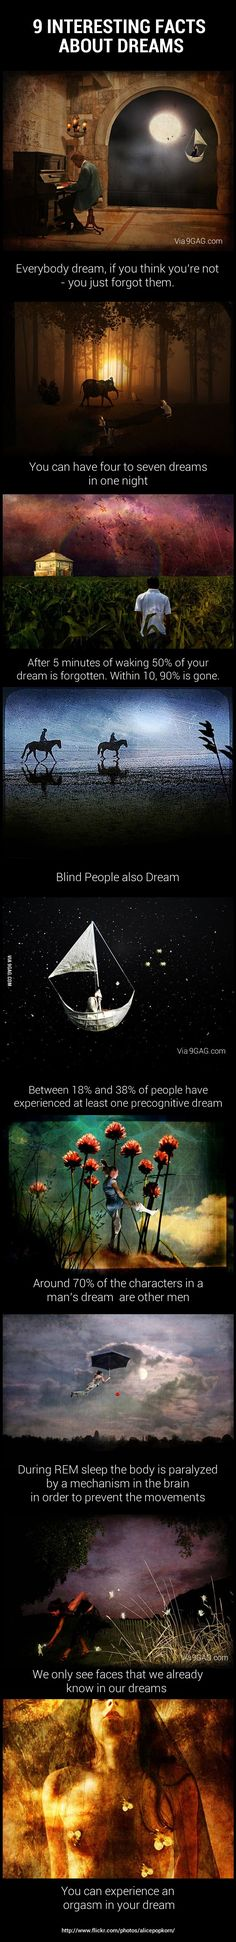 9 interesting facts about dreams. I have experienced the last one. Strangest experience ever...